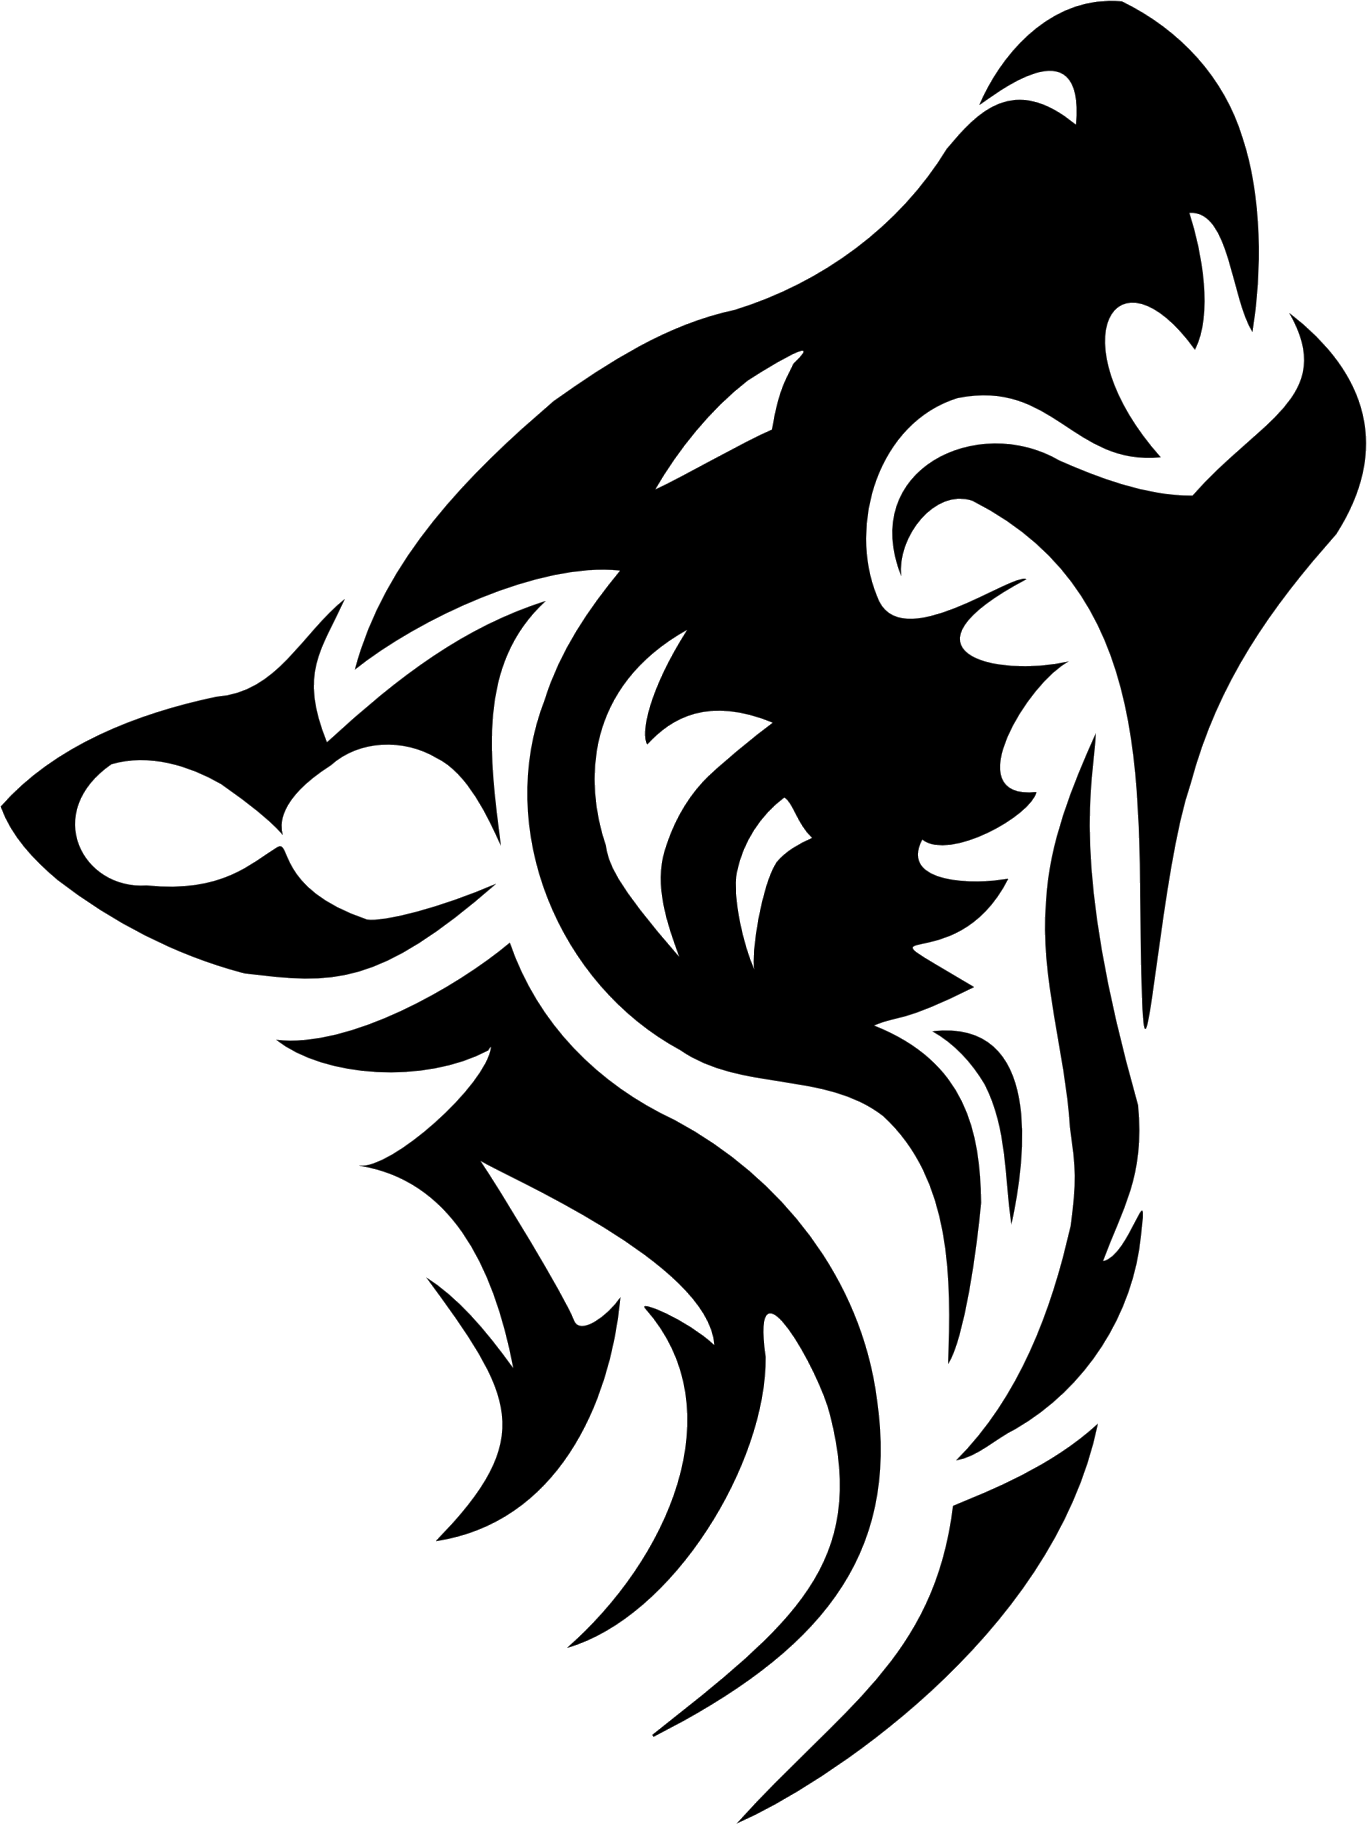 Wolf Tribal Tattoos Png Transparent Images  6690